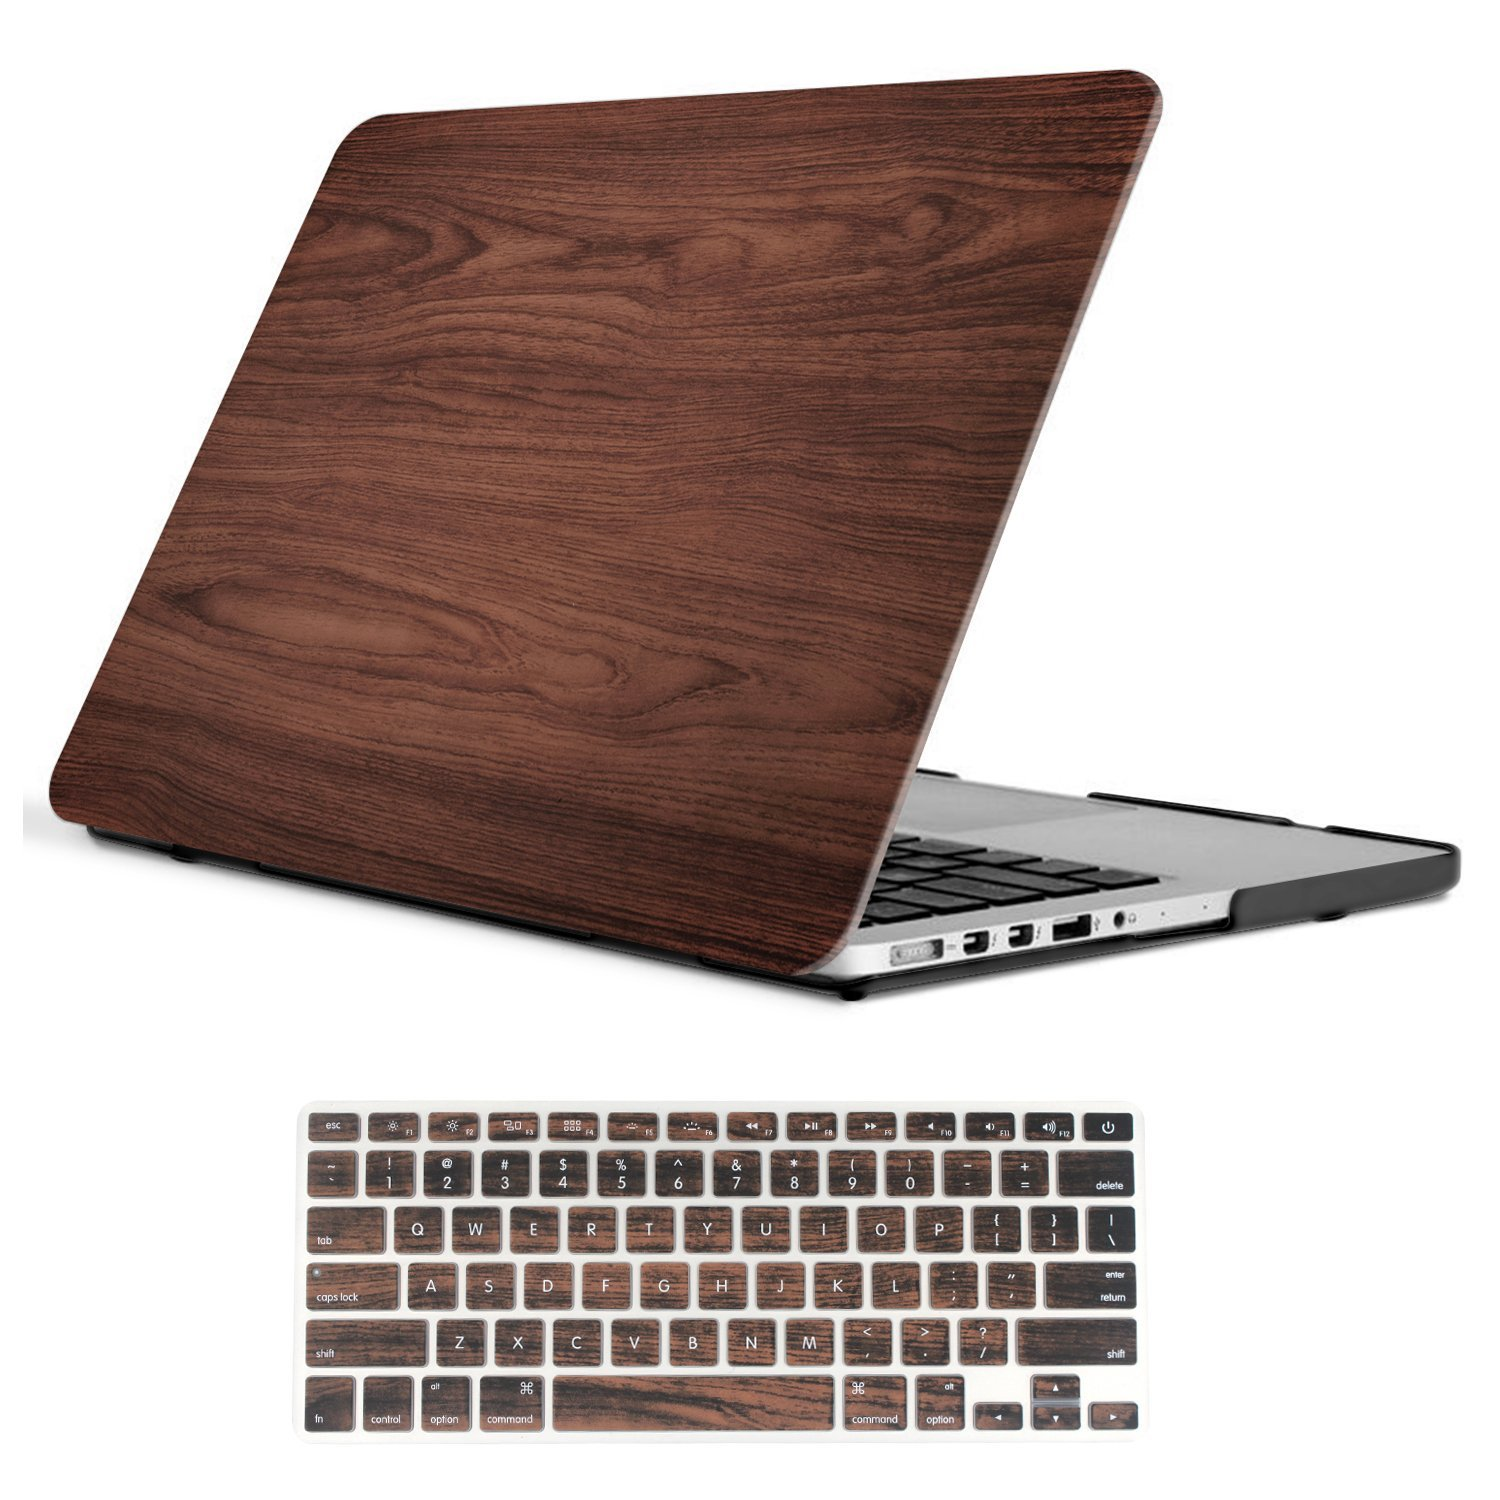 iCasso Macbook Pro 13 Retina Case Rubber Coated Hard Shell Protective Cover For Macbook Pro 13 Inch Retina (No CD-ROM) Model A1425/A1502 (2012-2015 Version) With Keyboard Cover (Wood)